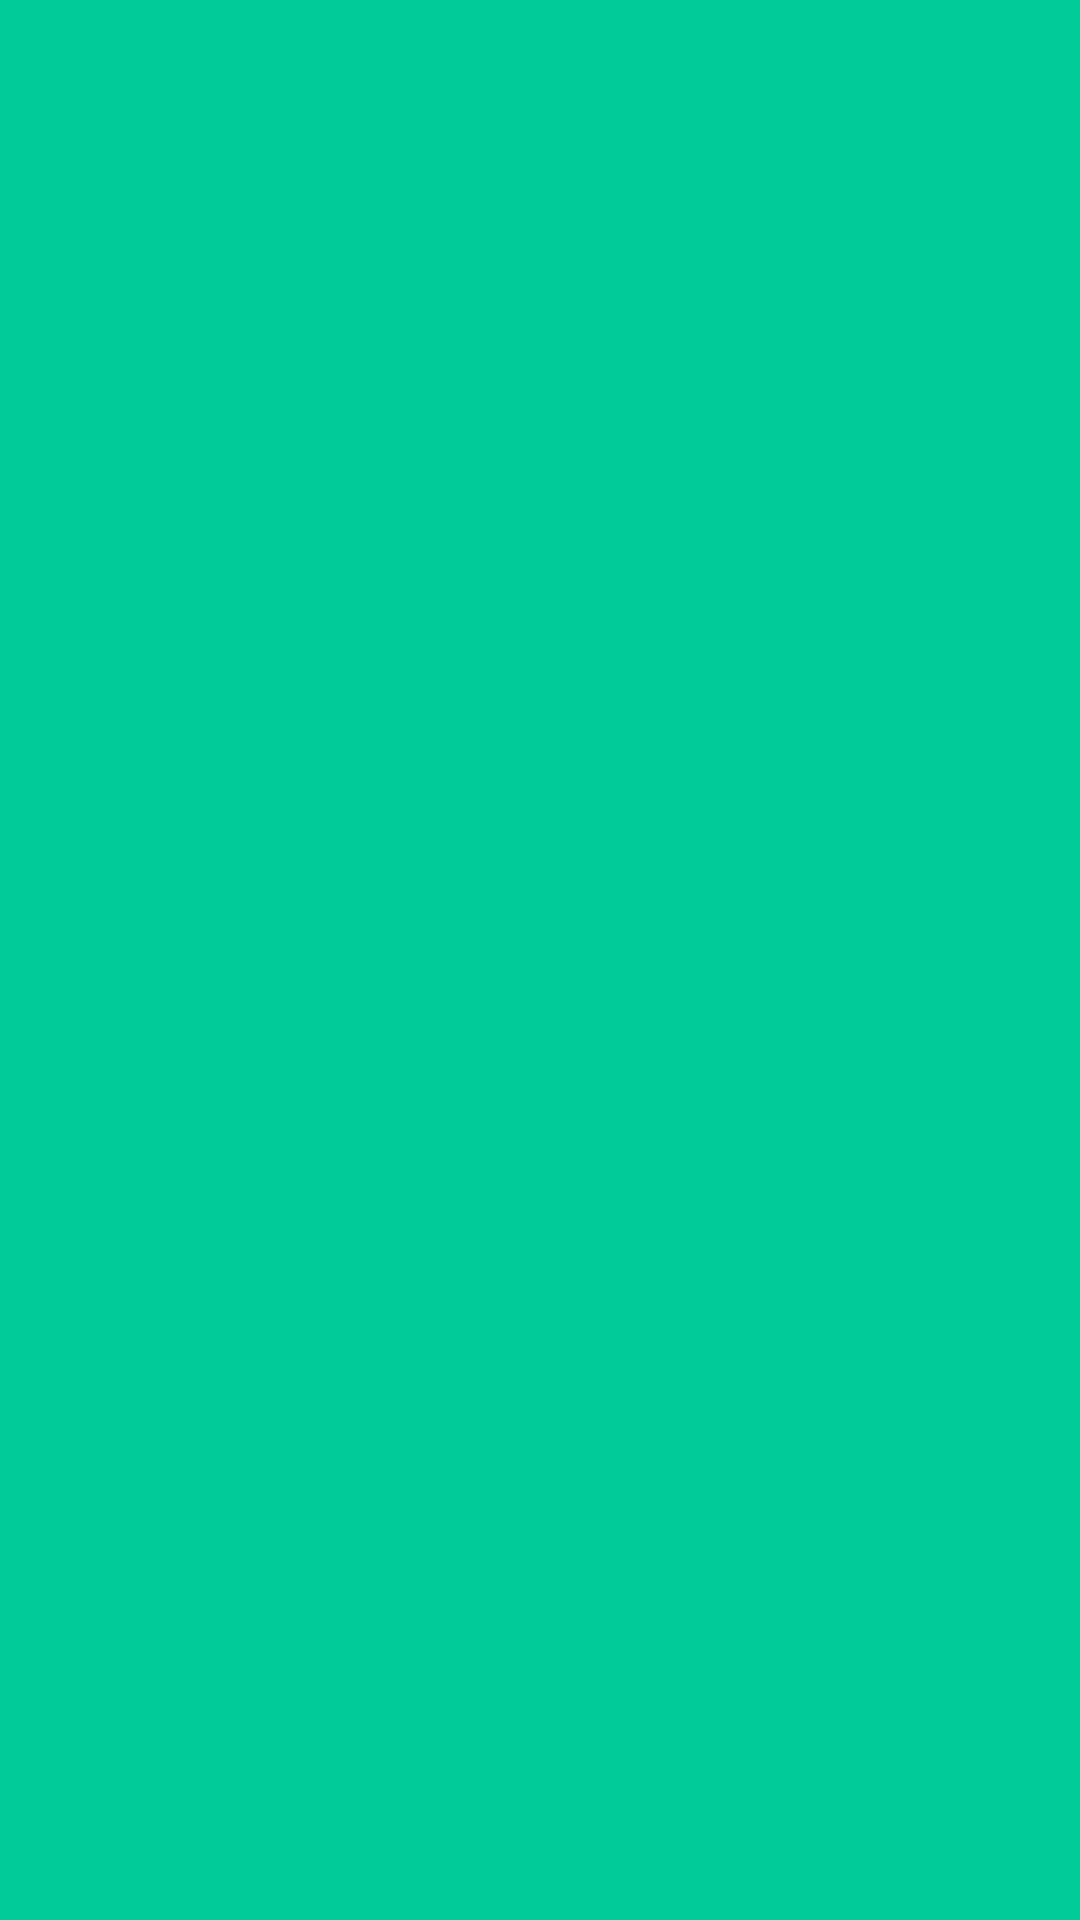 1080x1920 Caribbean Green Solid Color Background